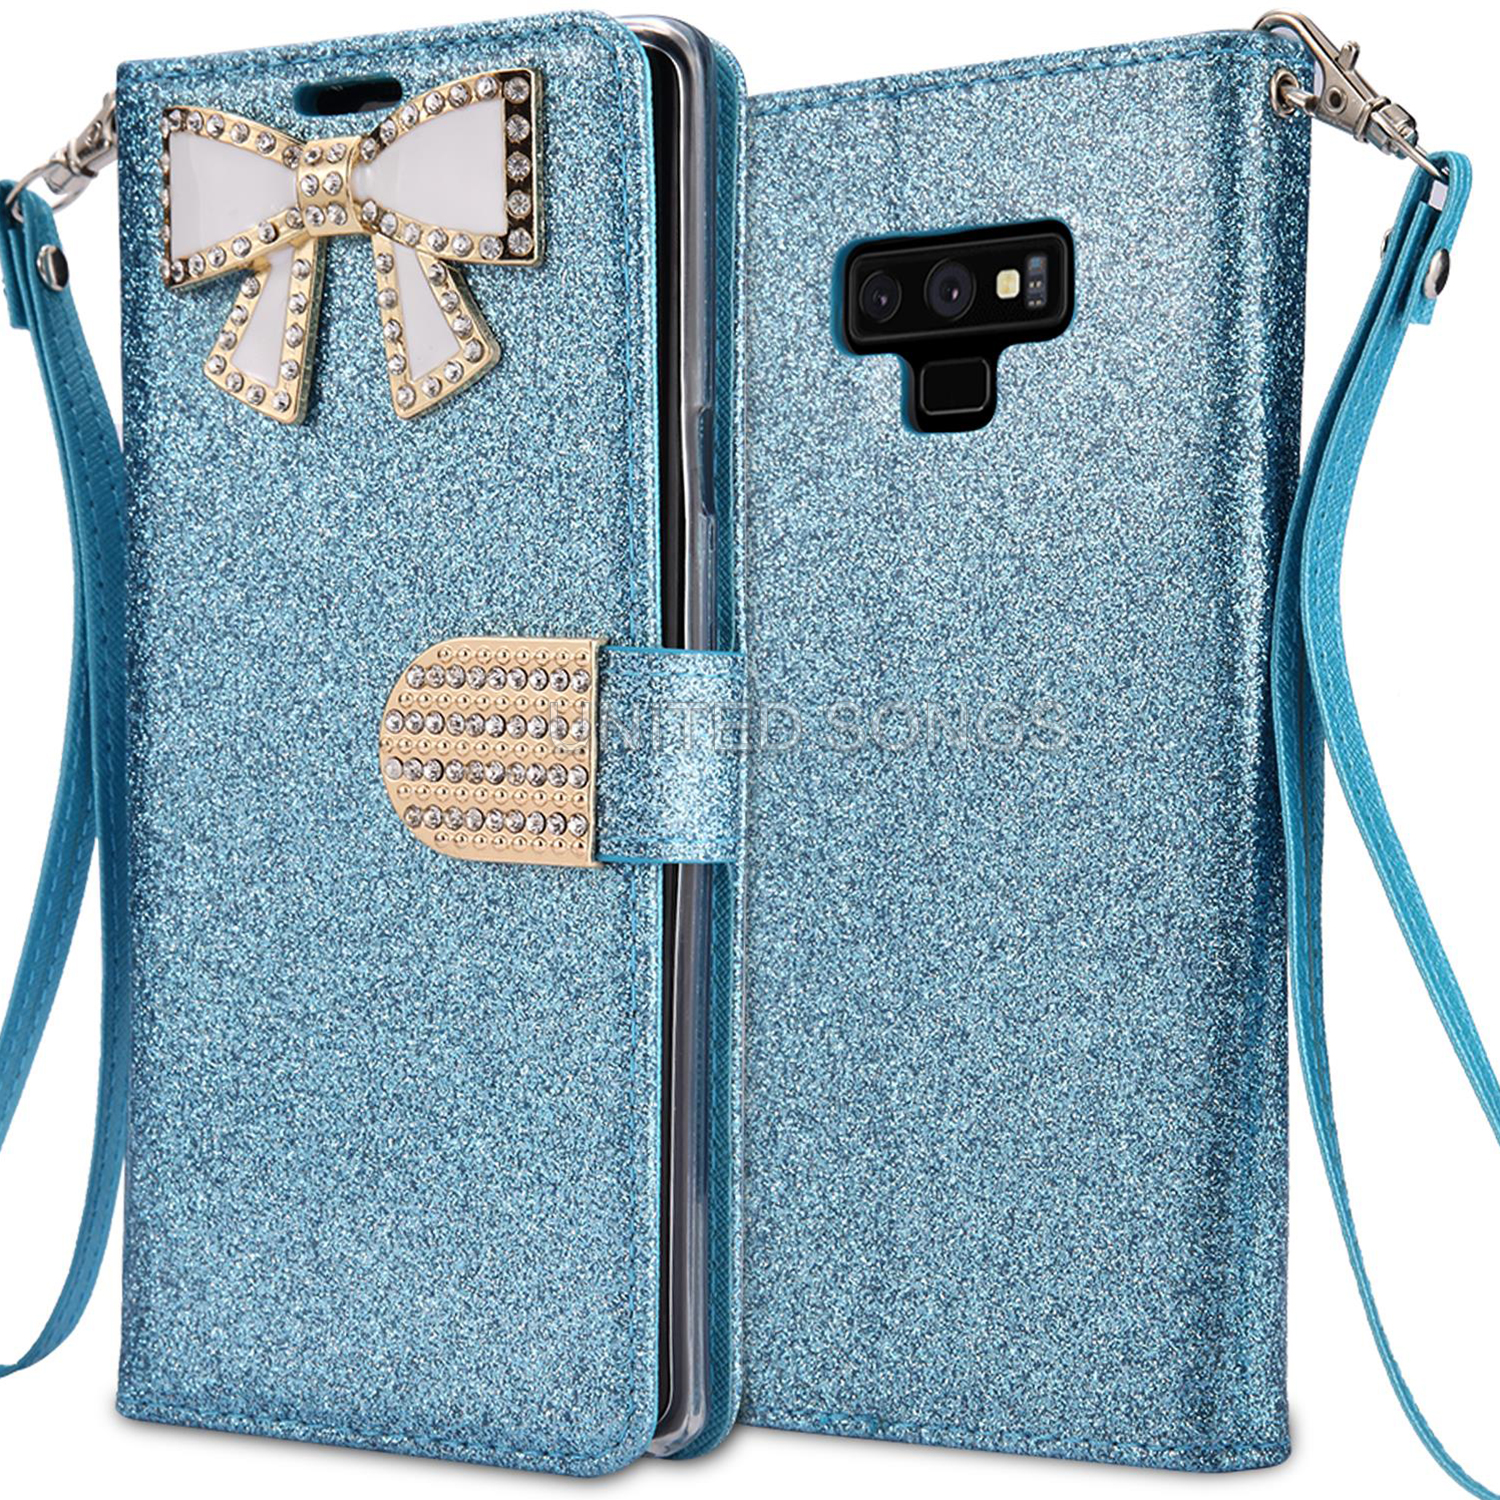 Samsung Galaxy Note 10 Sparkle Wallet Case With Diamond Butterfly Design Blue